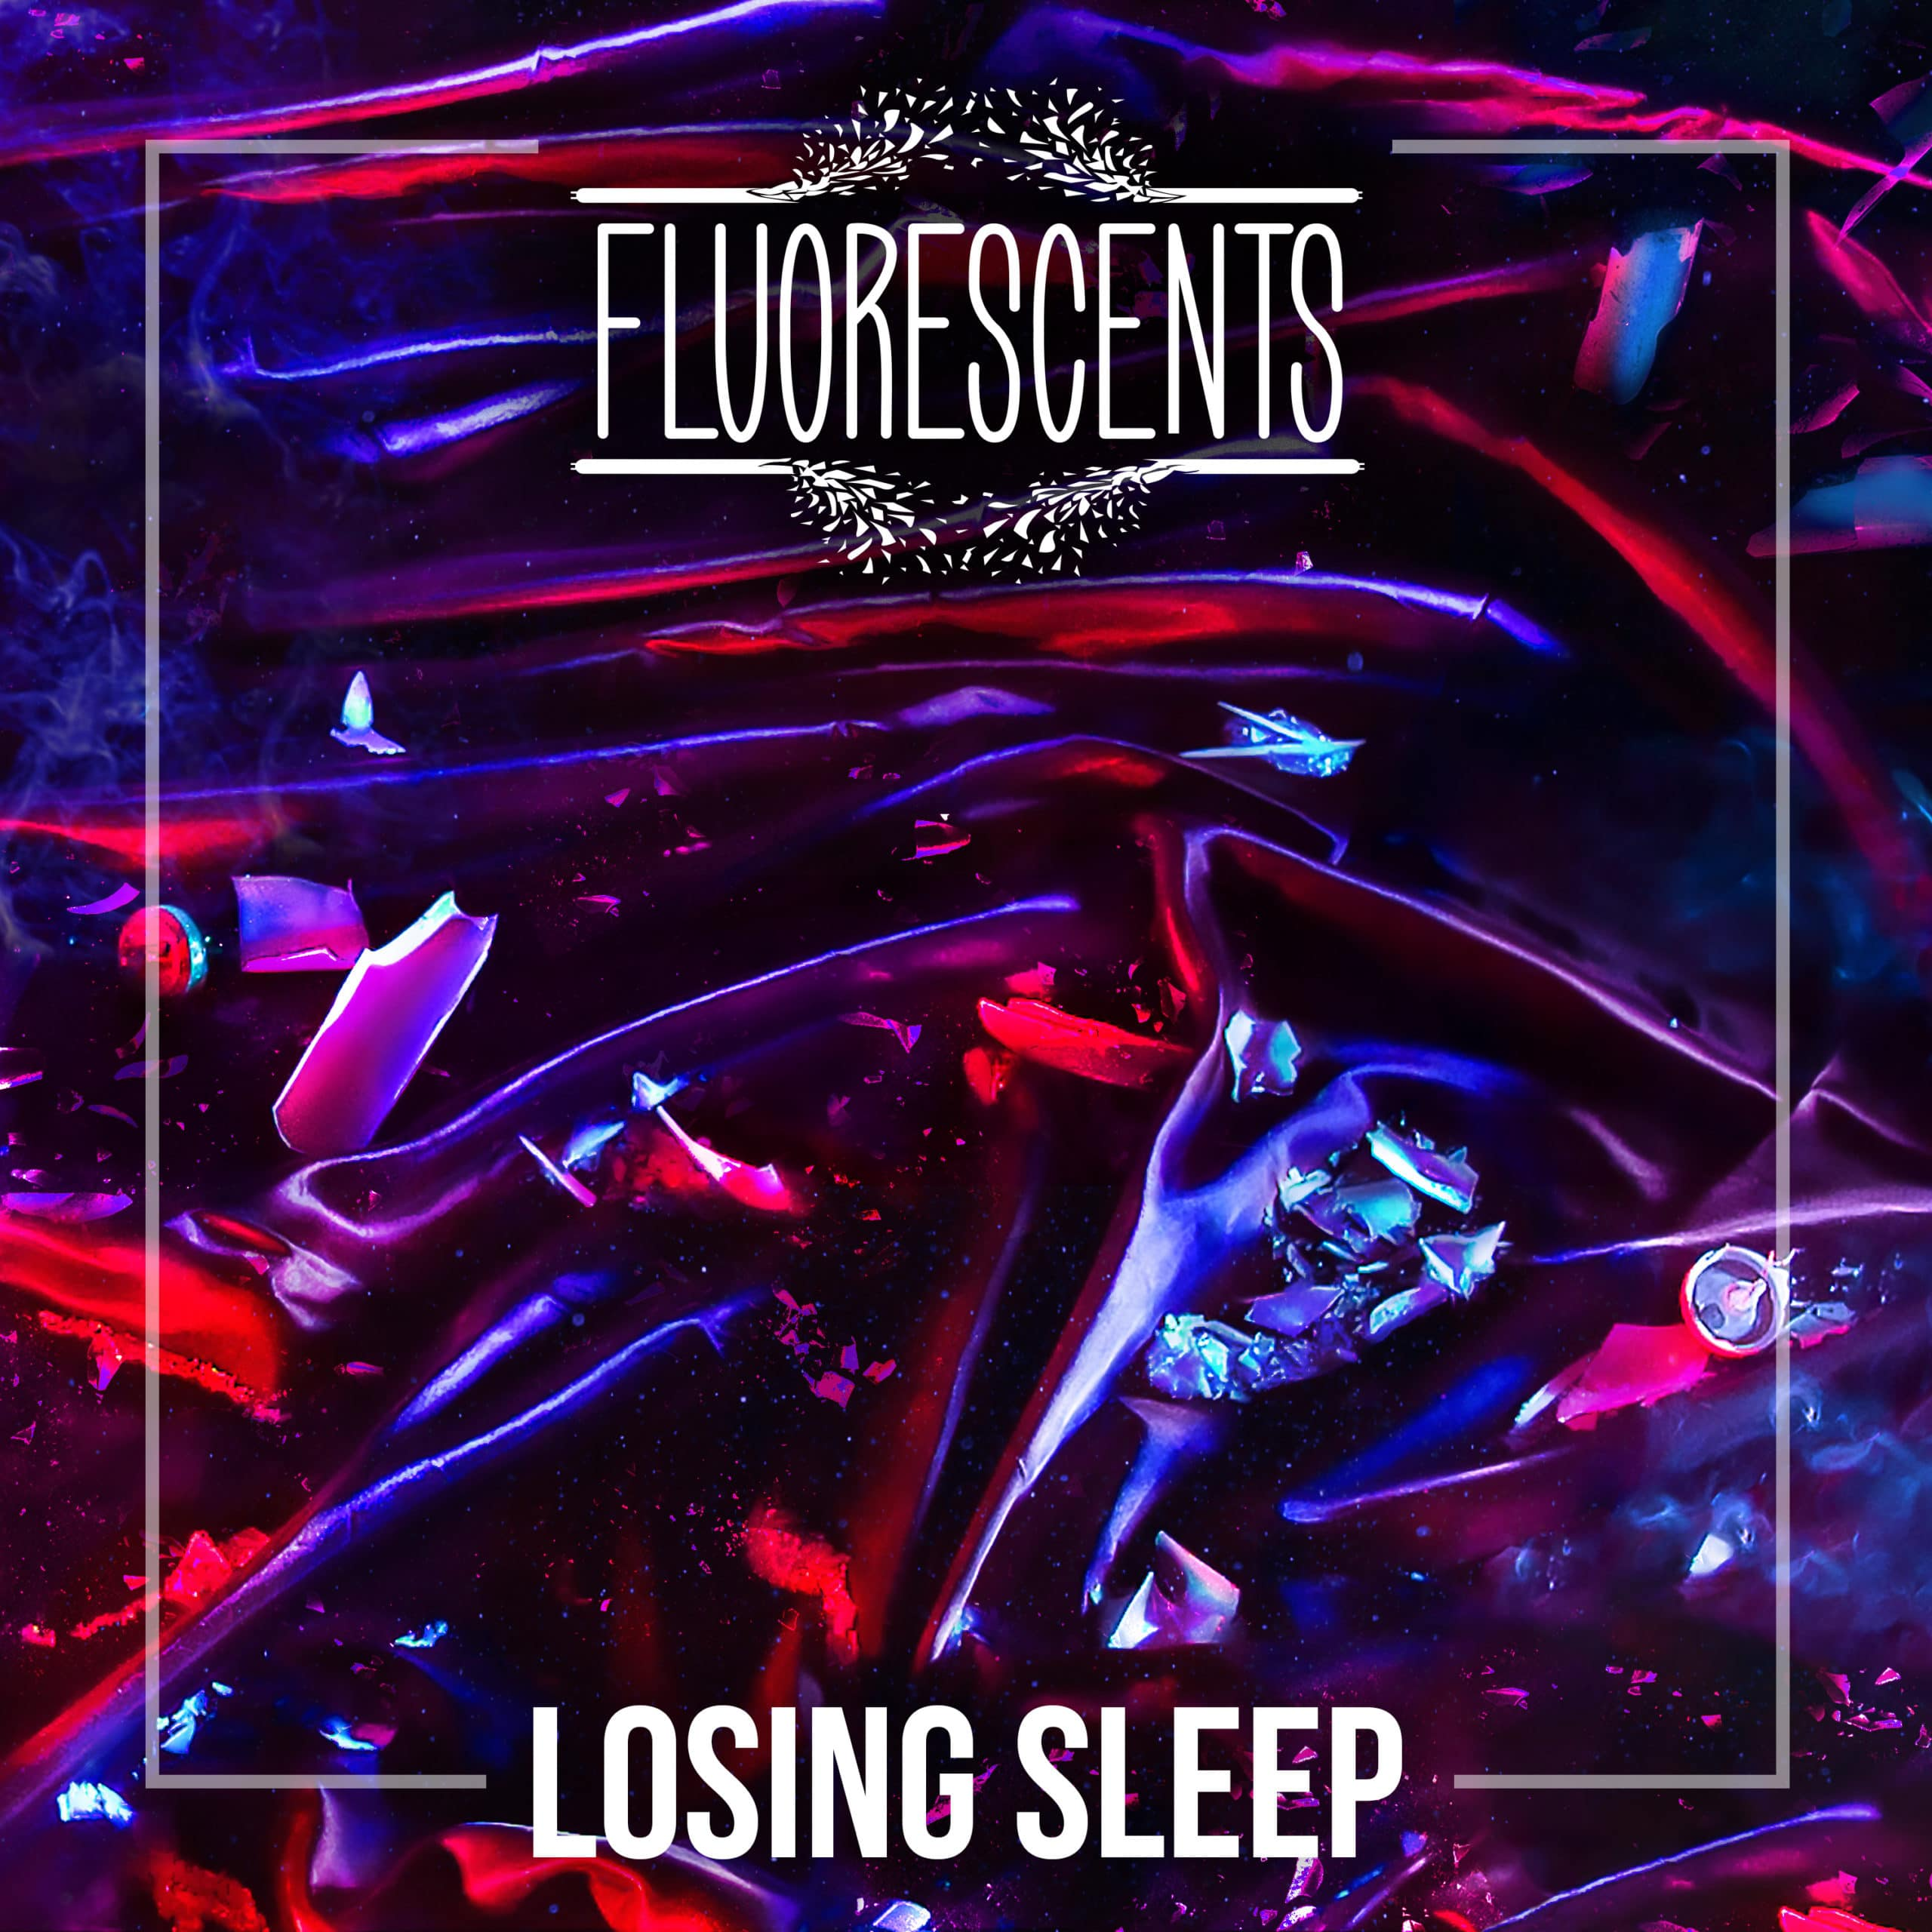 Fluorescents – Losing Sleep